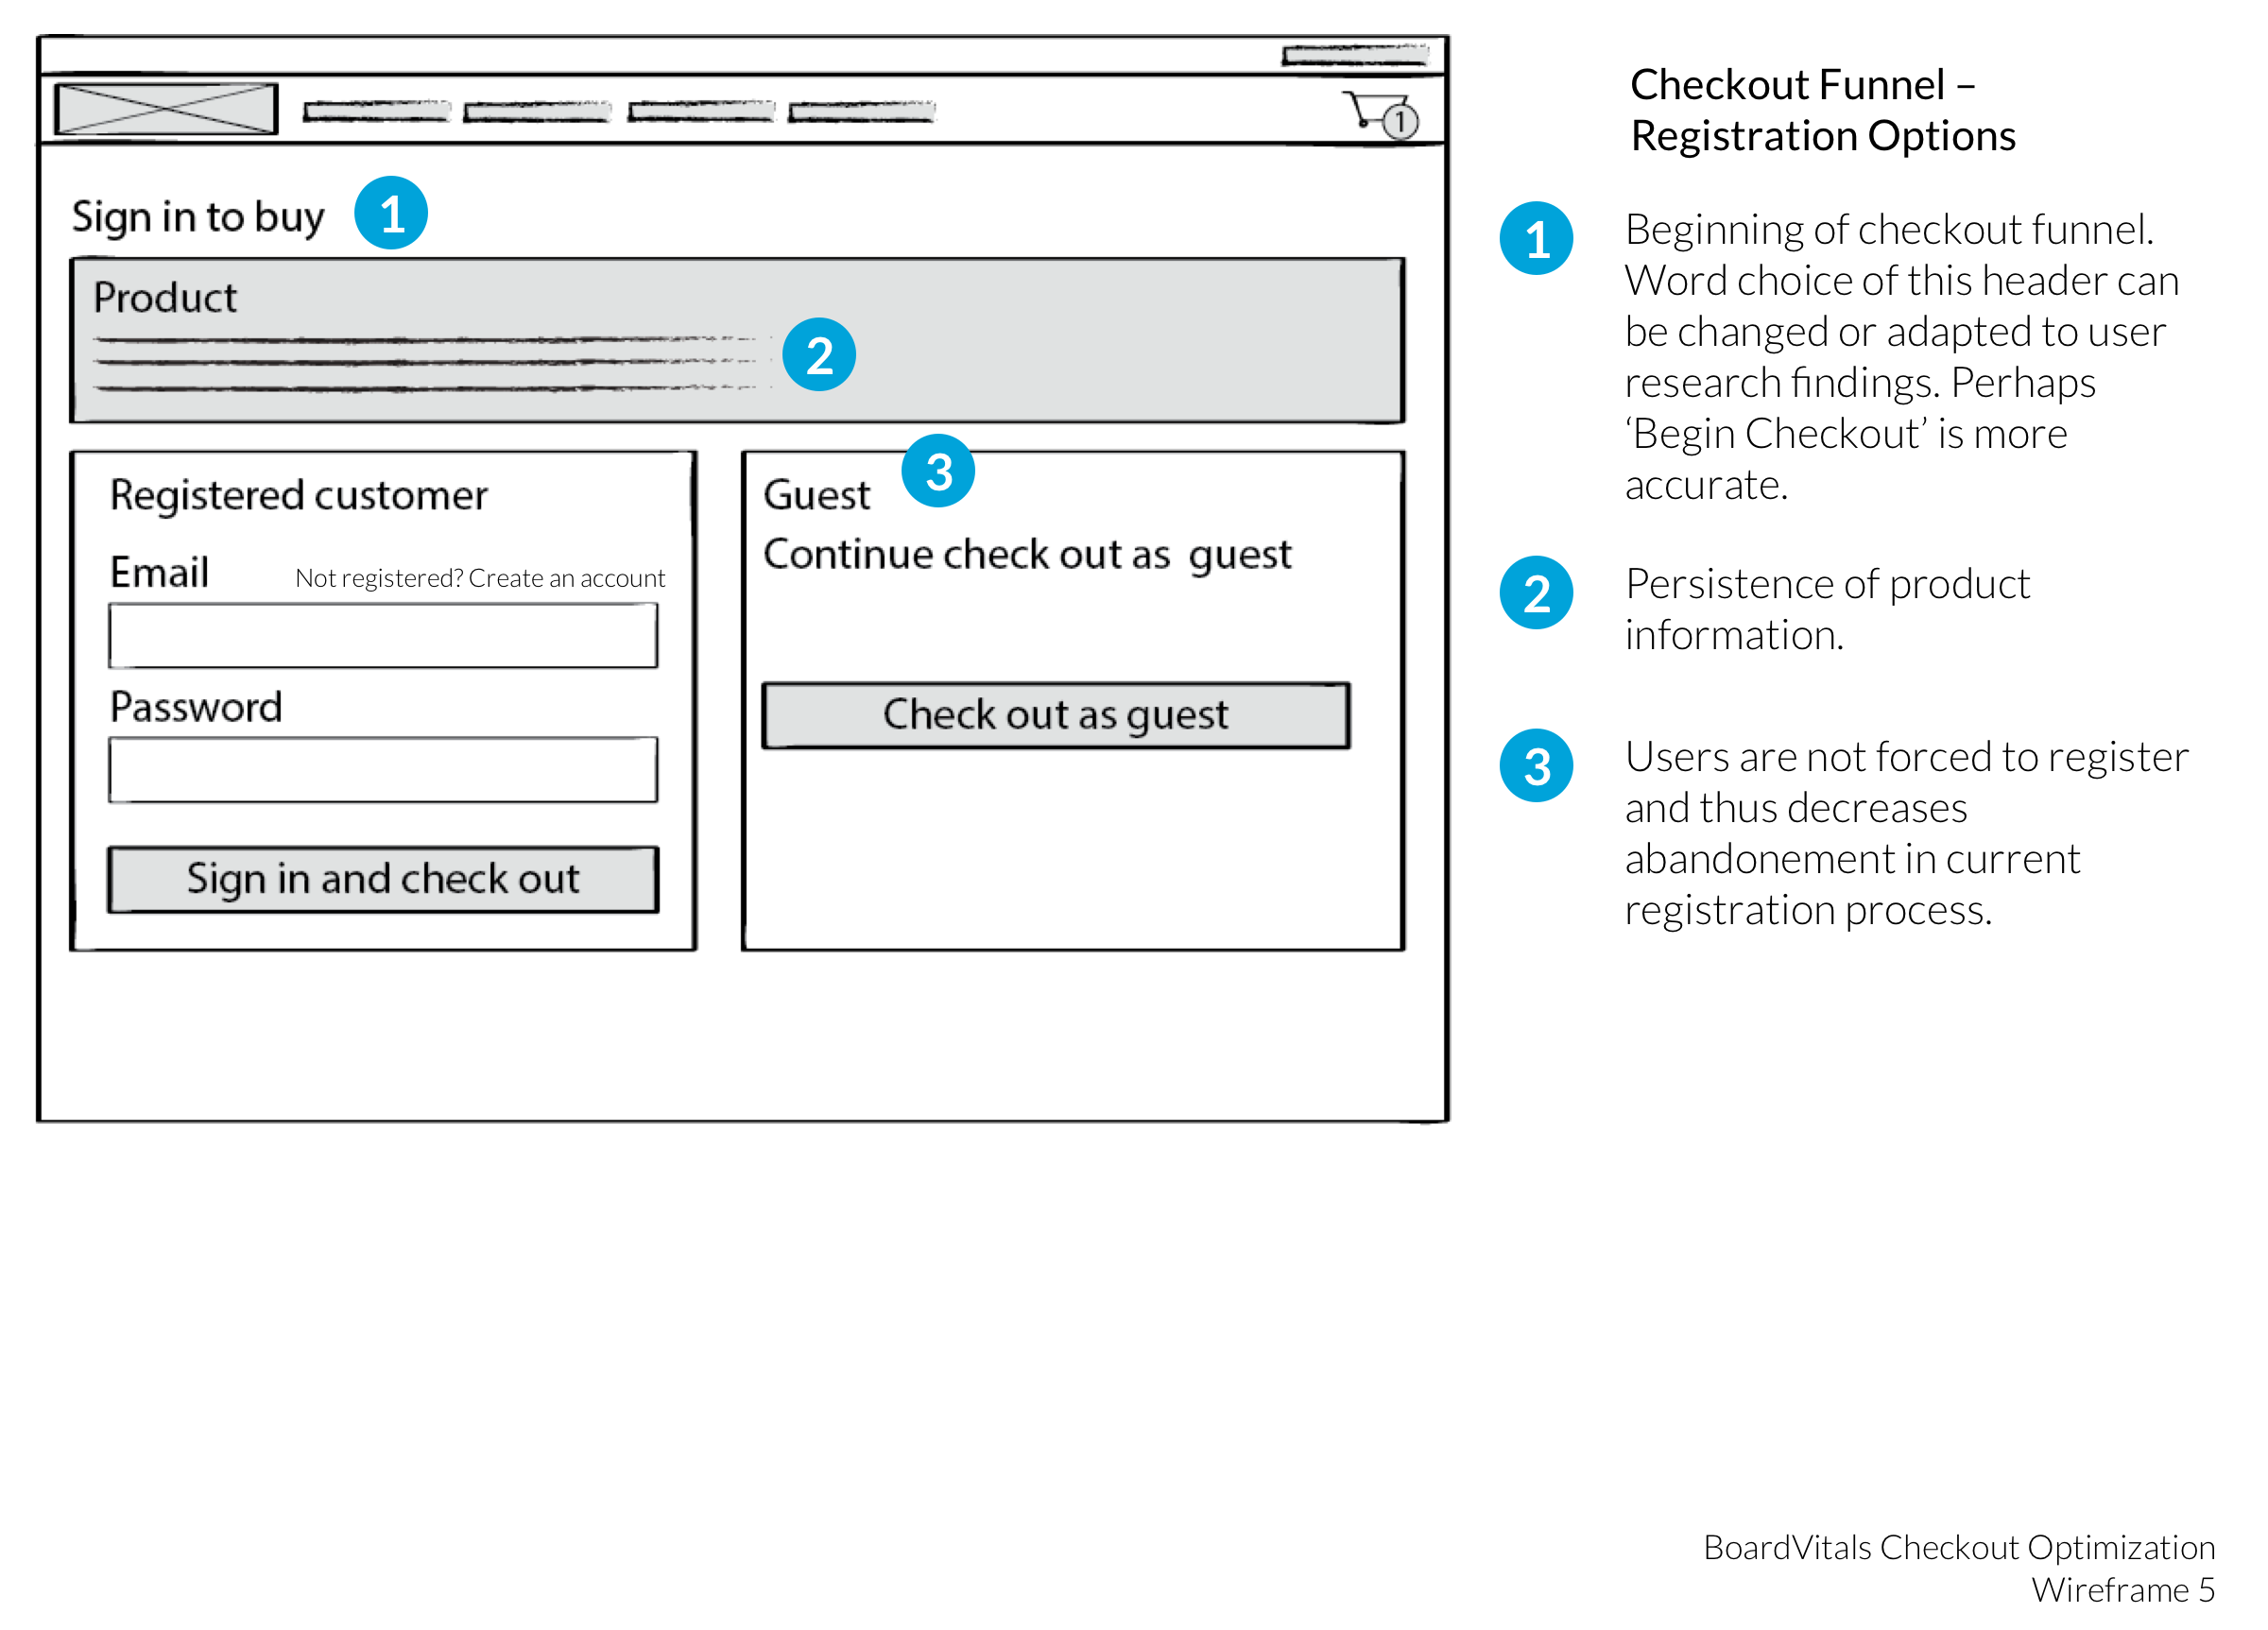 BV checkout optimization_wireframe_flows Copy 4.png